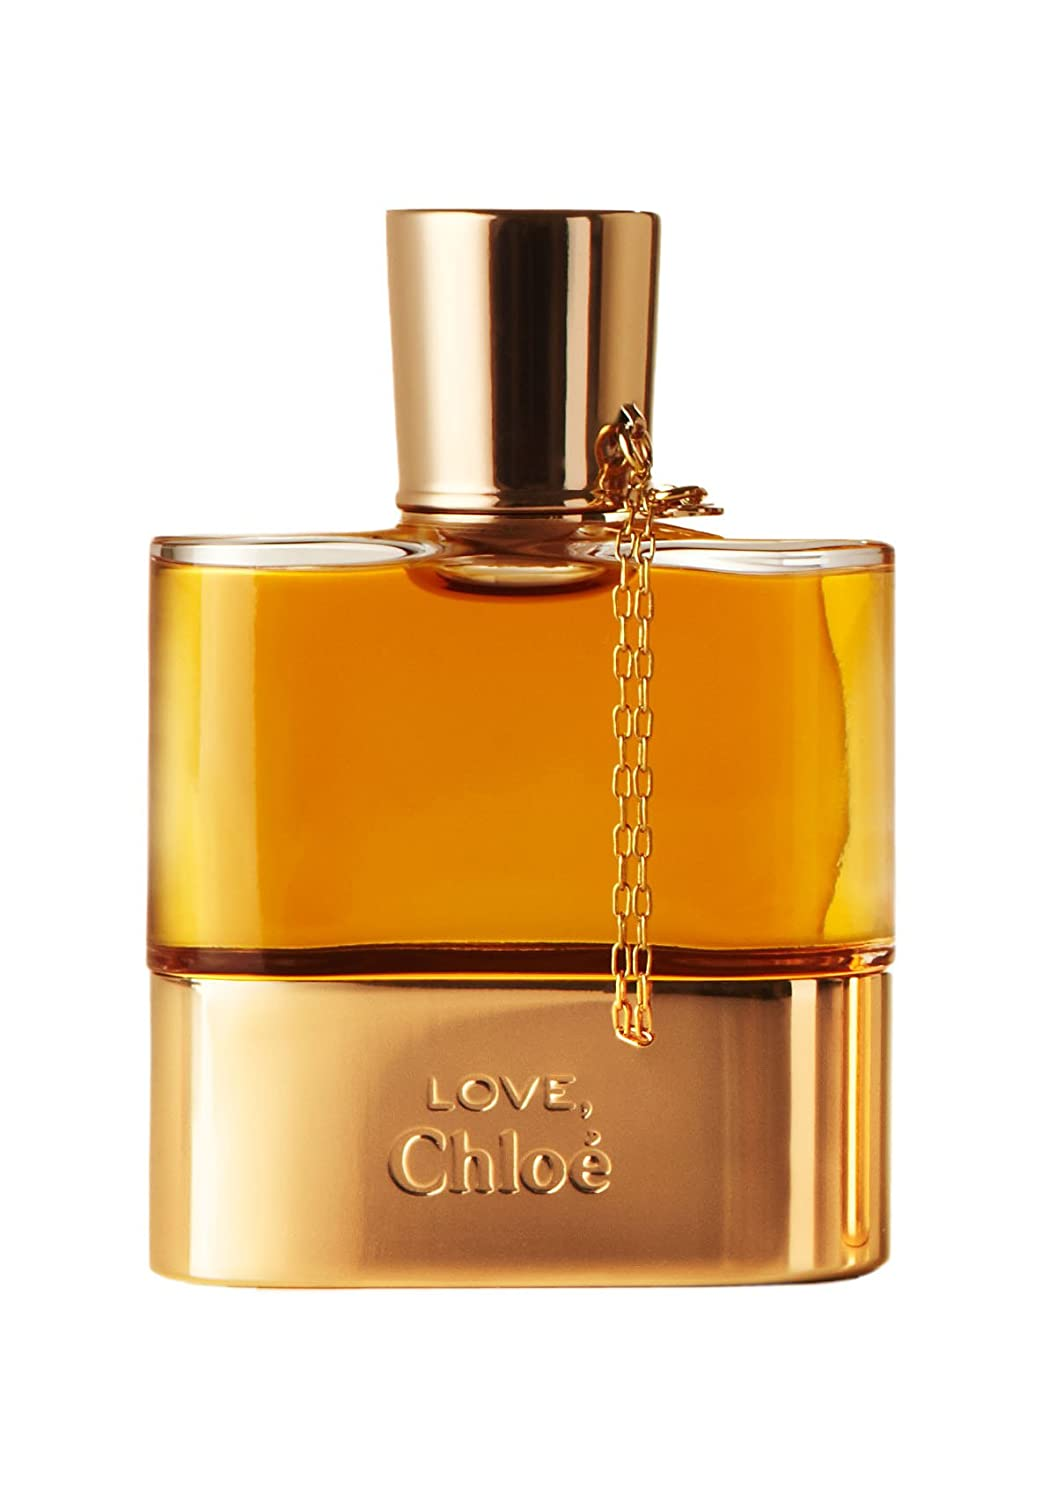 Chloe Love Eau Intense Eau de Parfum 30ml